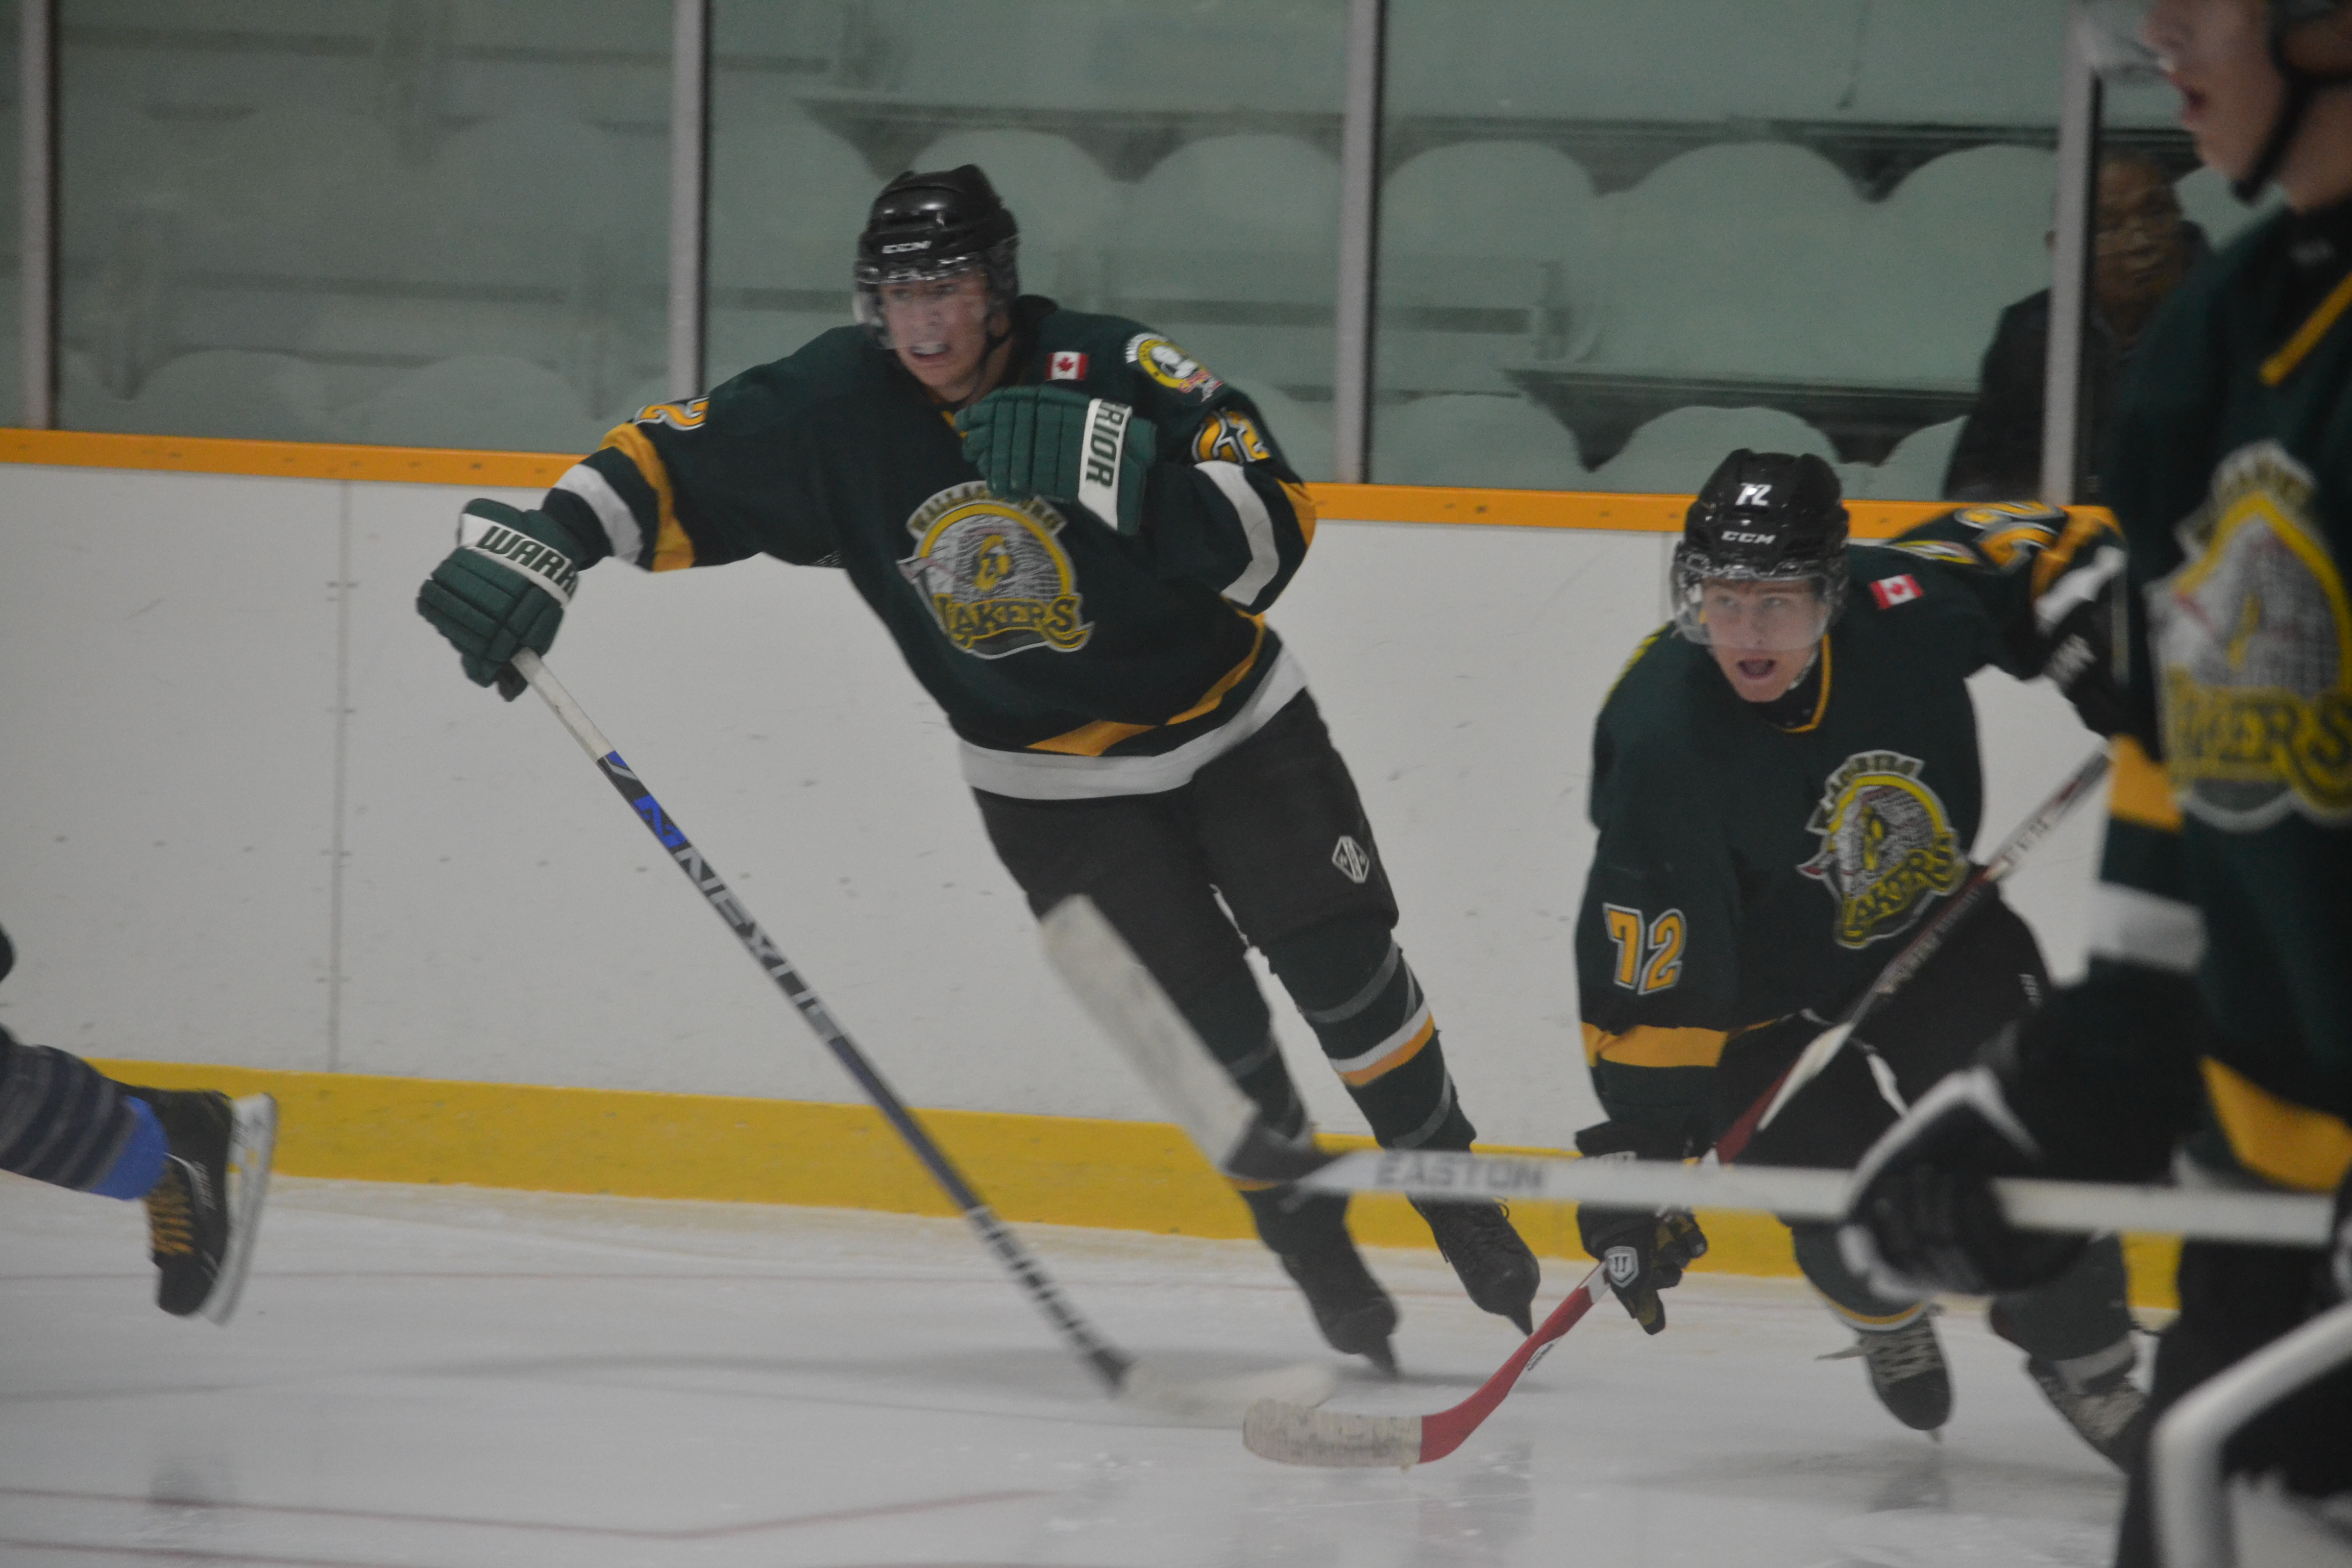 The Wallaceburg Lakers host the Amherstburg Admirals in their 2014 home opener. (Photo courtesy of Gail Cook)